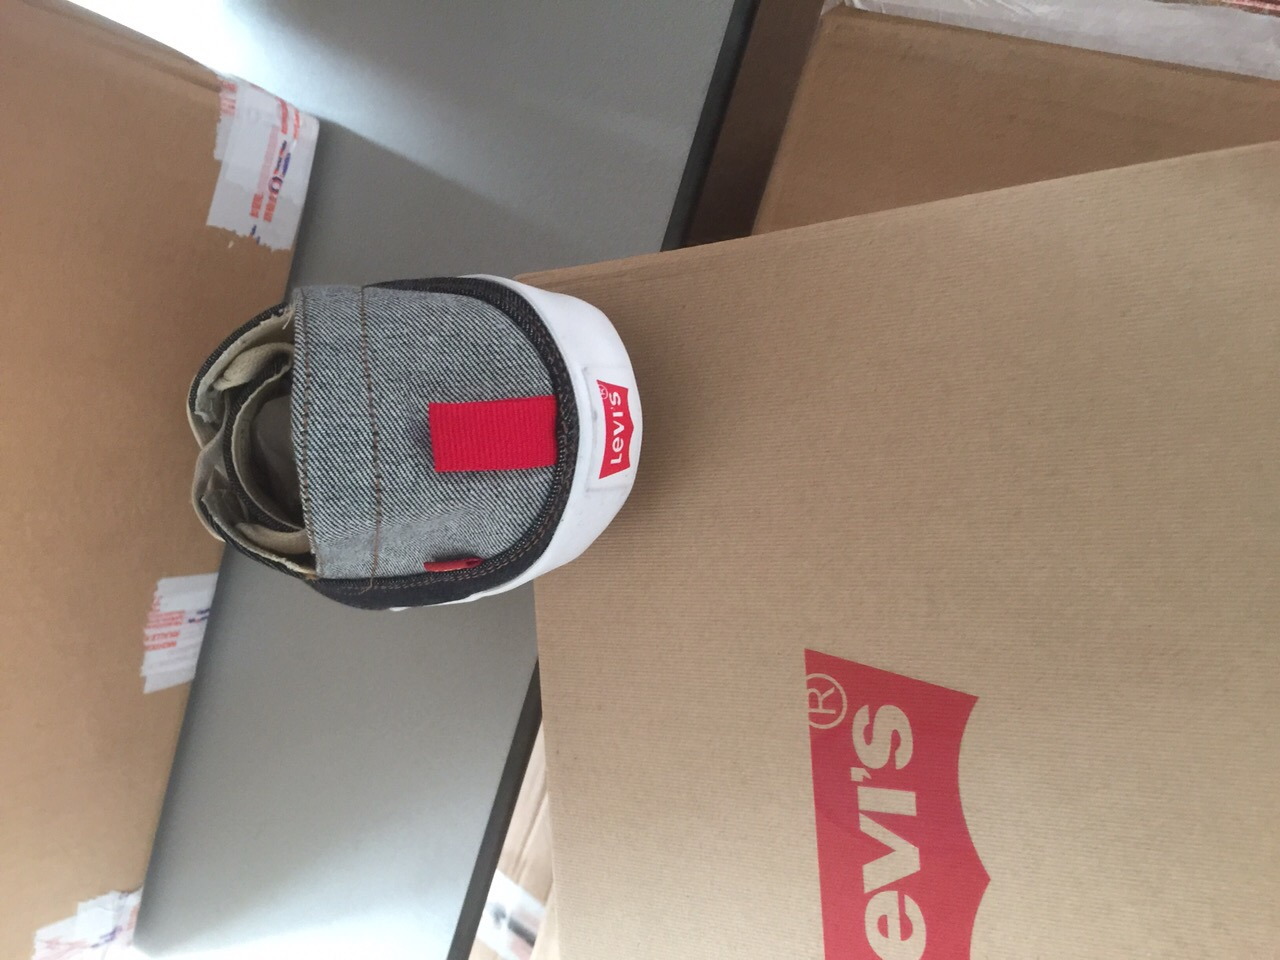 Levi's Shoes In Wholesale